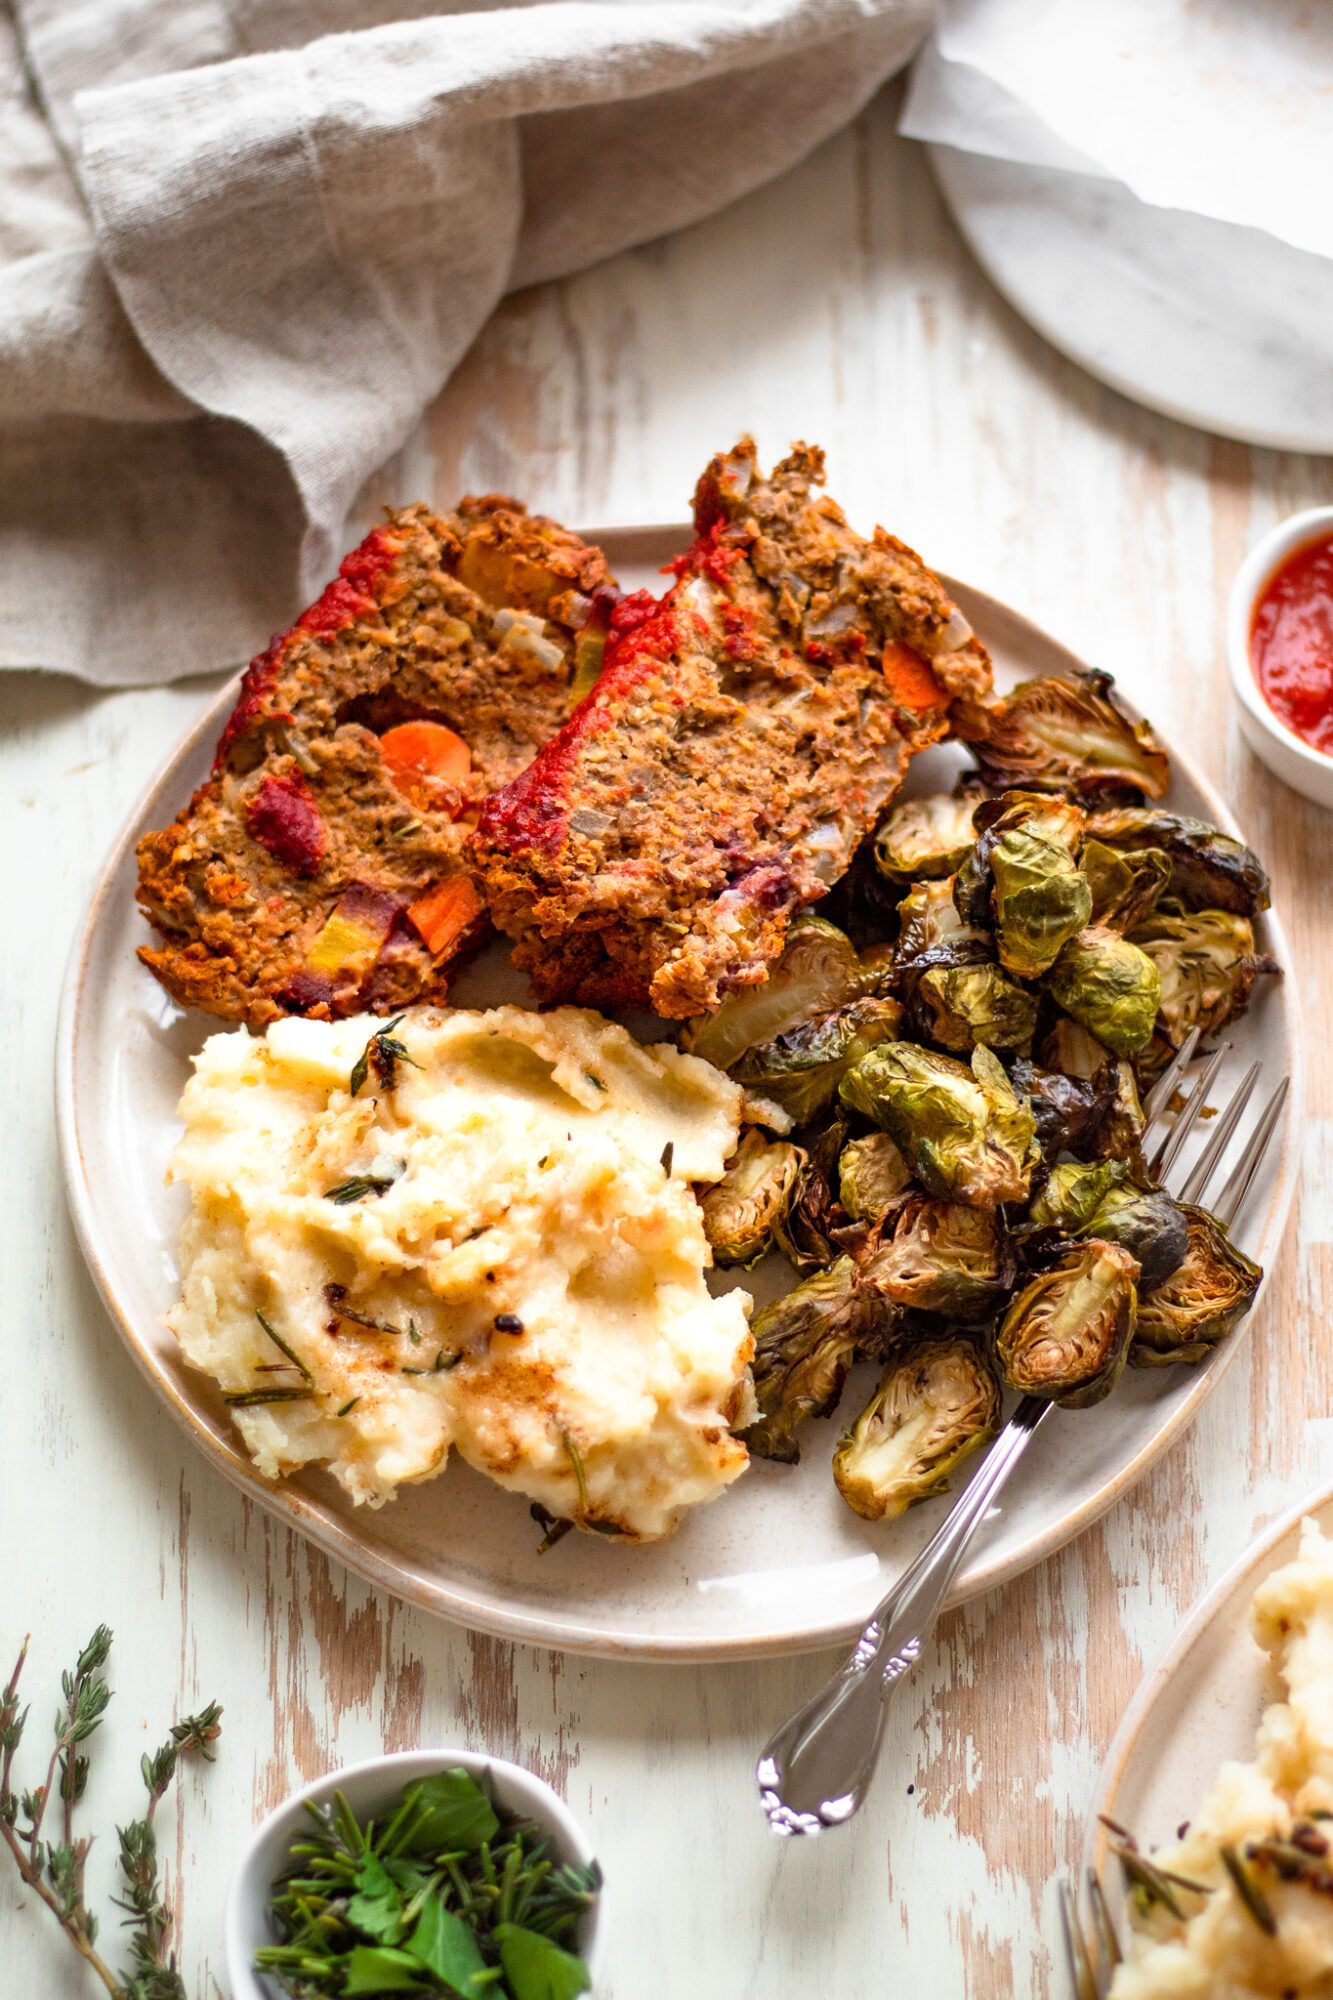 plate of lentil loaf and mashed potatoes